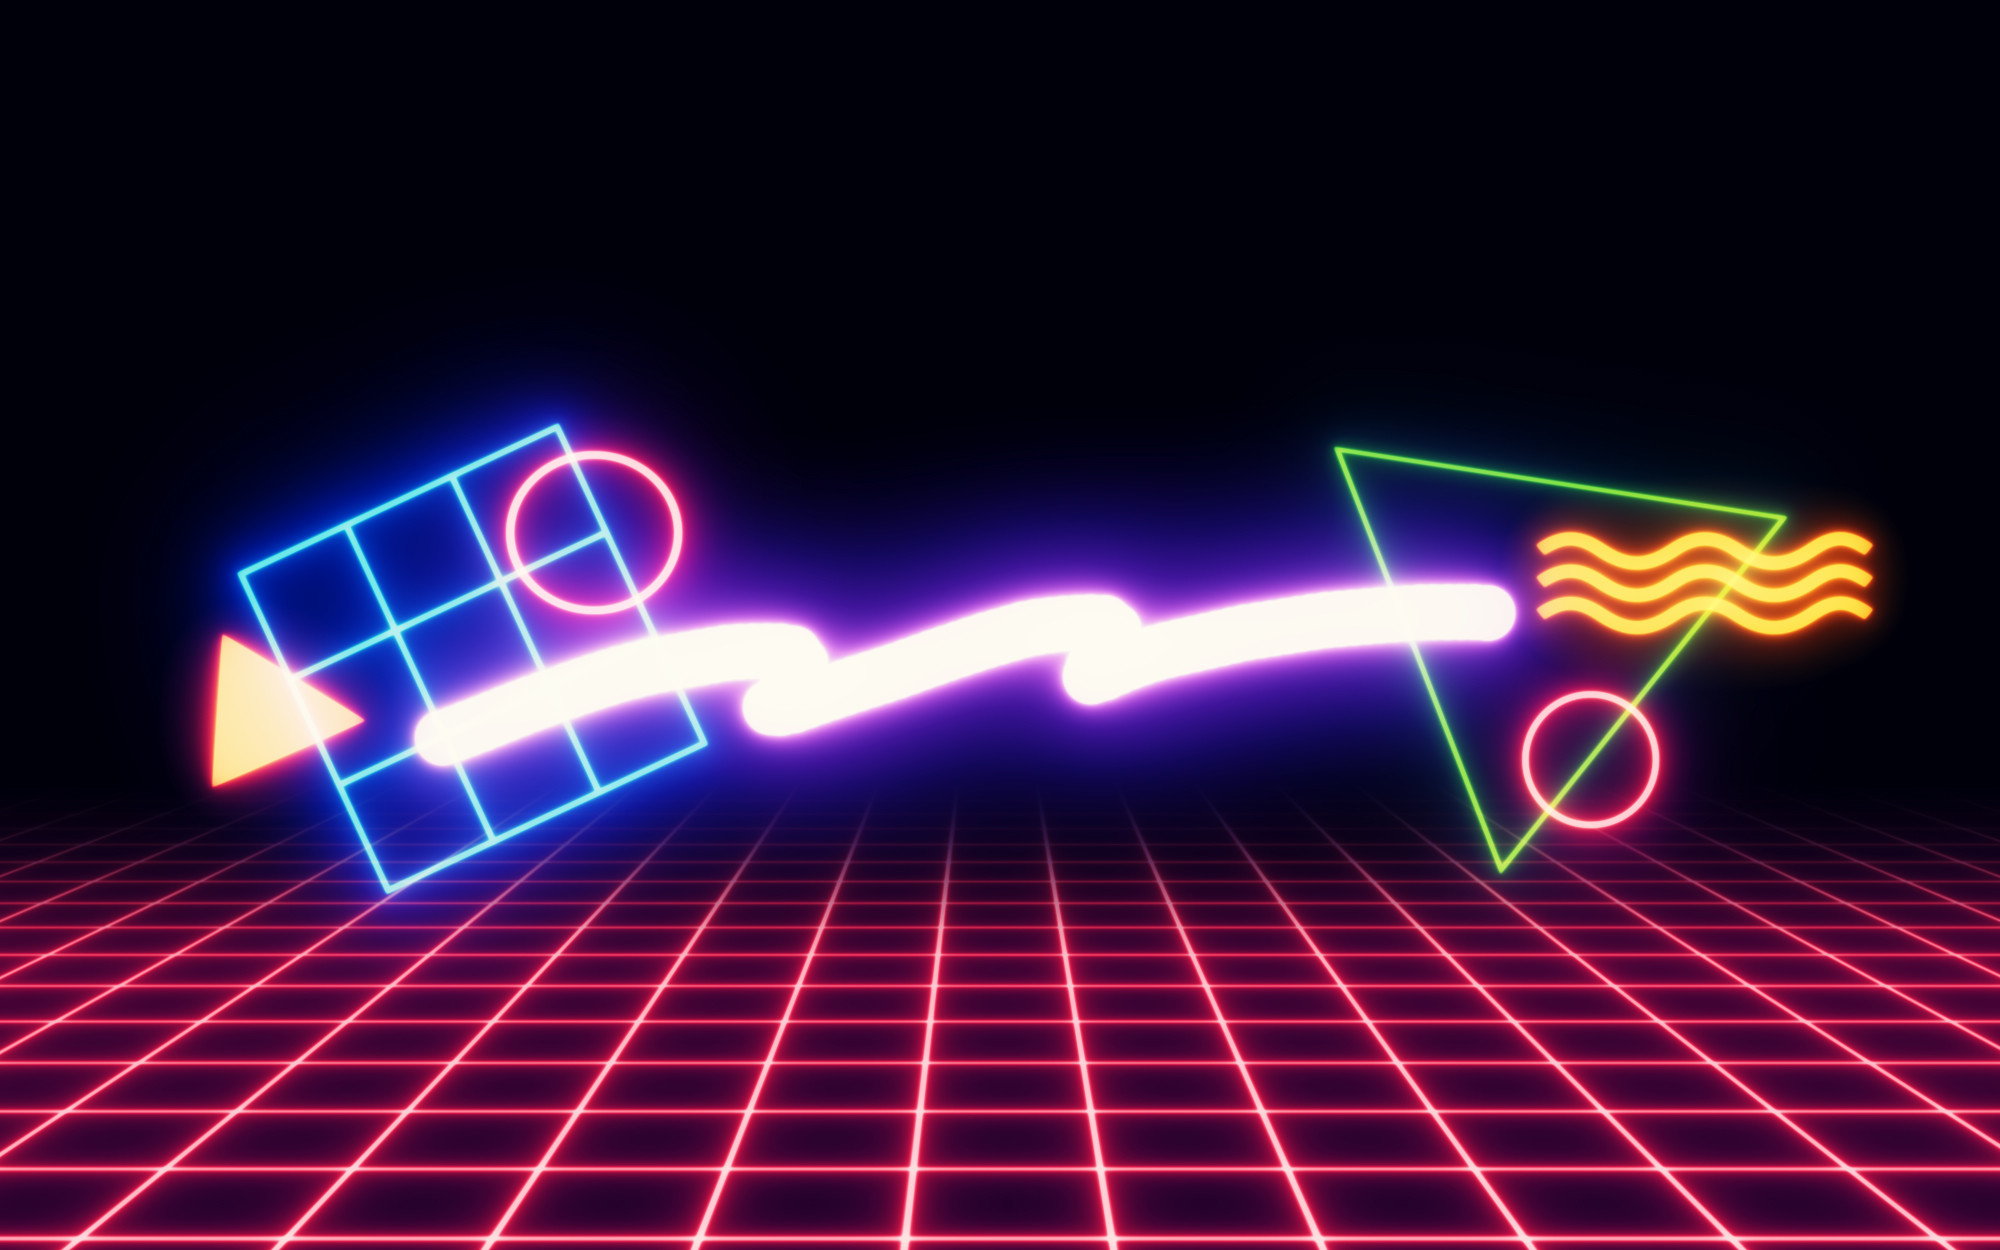 '80s Neon Shapes/Wallpapers on Behance